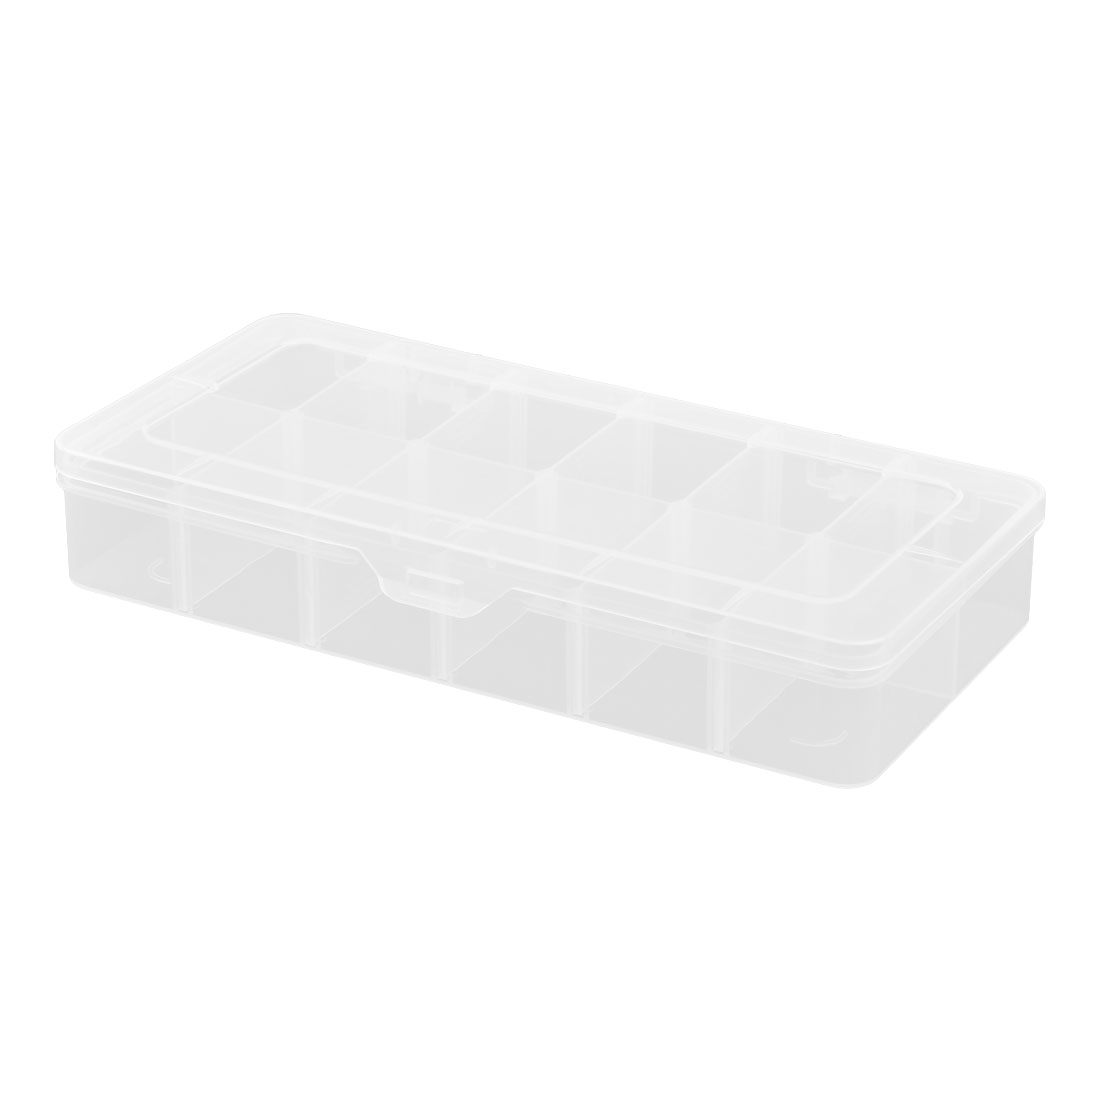 Household Plastic Sweing Accessories Craft Parts Compartments Holder Storage Box